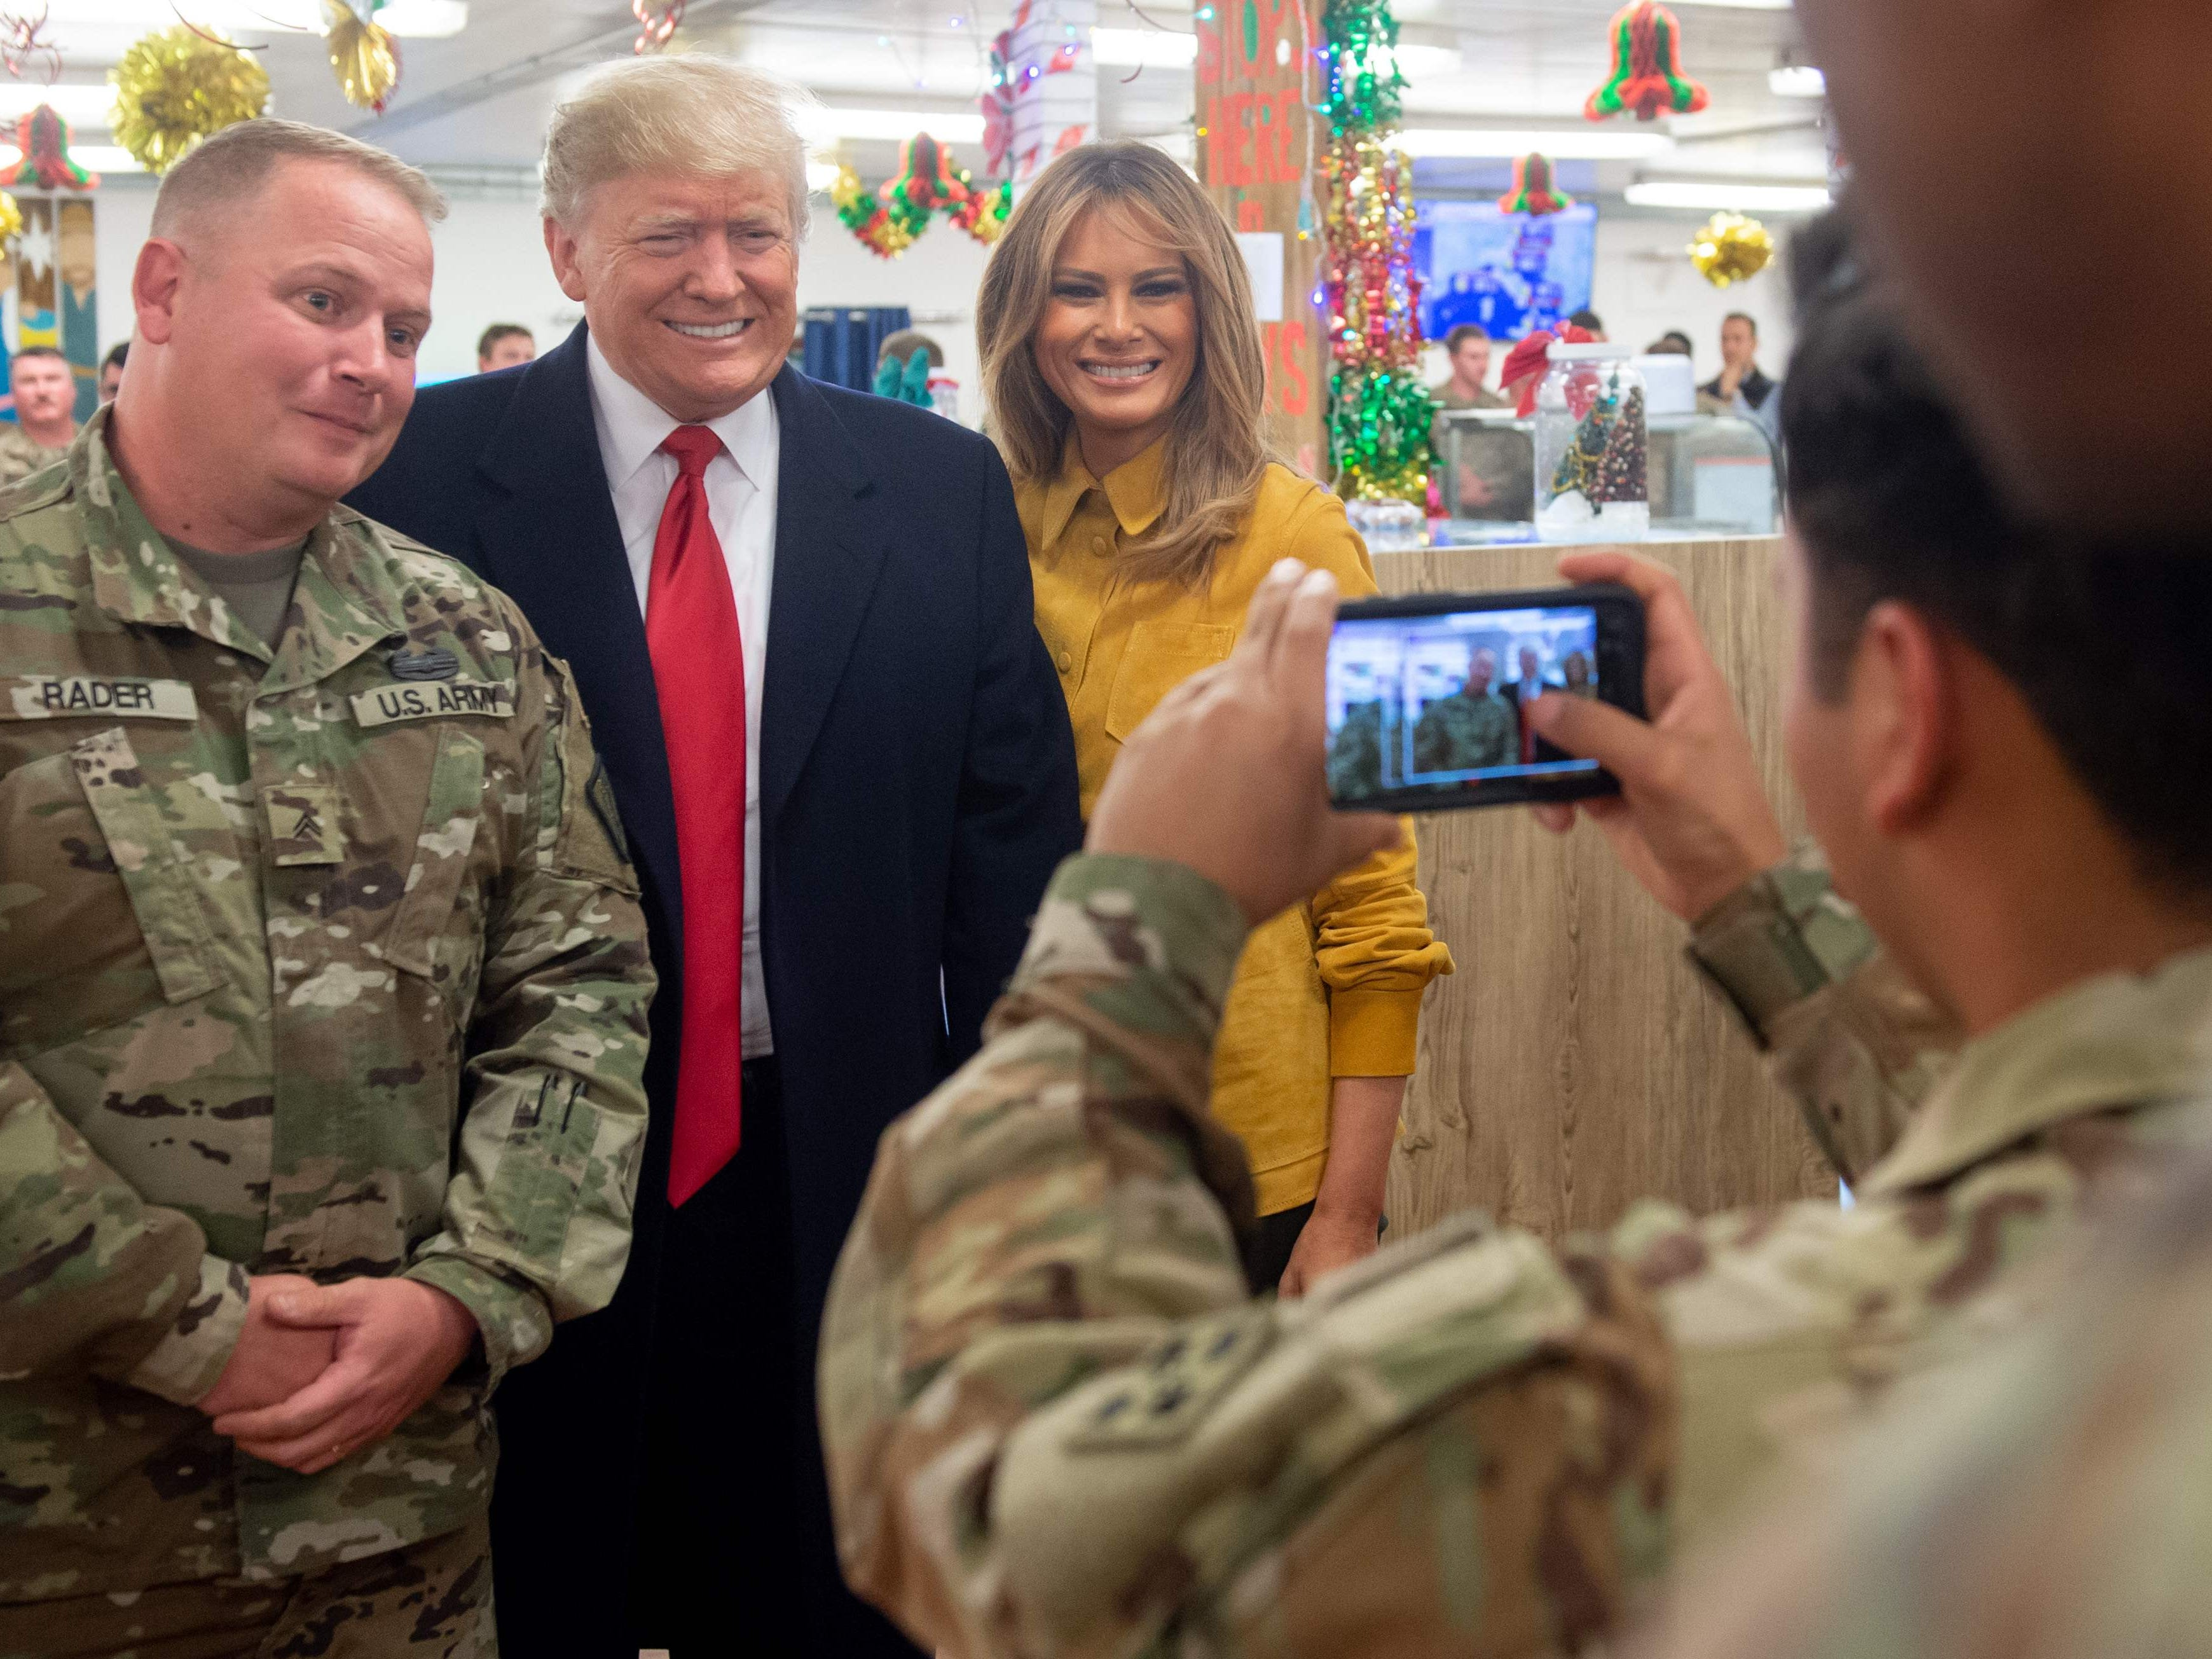 US President Donald Trump and First Lady Melania Trump take photos with members of the US military during an unannounced trip to Al Asad Air Base in Iraq on December 26, 2018. - President Donald Trump arrived in Iraq on his first visit to US troops deployed in a war zone since his election two years ago (Photo by SAUL LOEB / AFP)SAUL LOEB/AFP/Getty Images ORG XMIT: US Presid ORIG FILE ID: AFP_1BU3JR